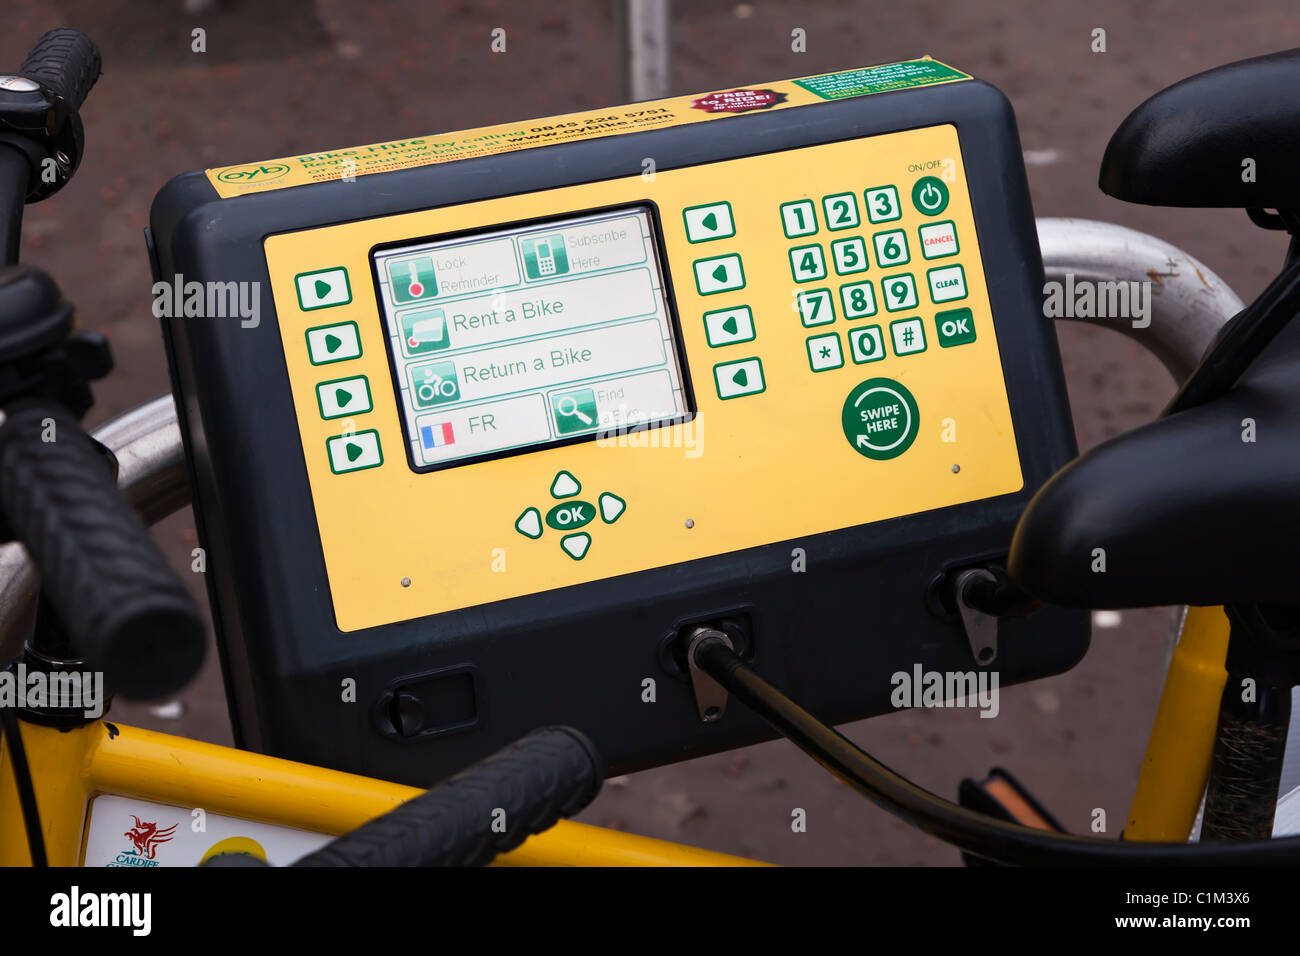 Meter on rent a bike stand Cardiff Wales UK - Stock Image